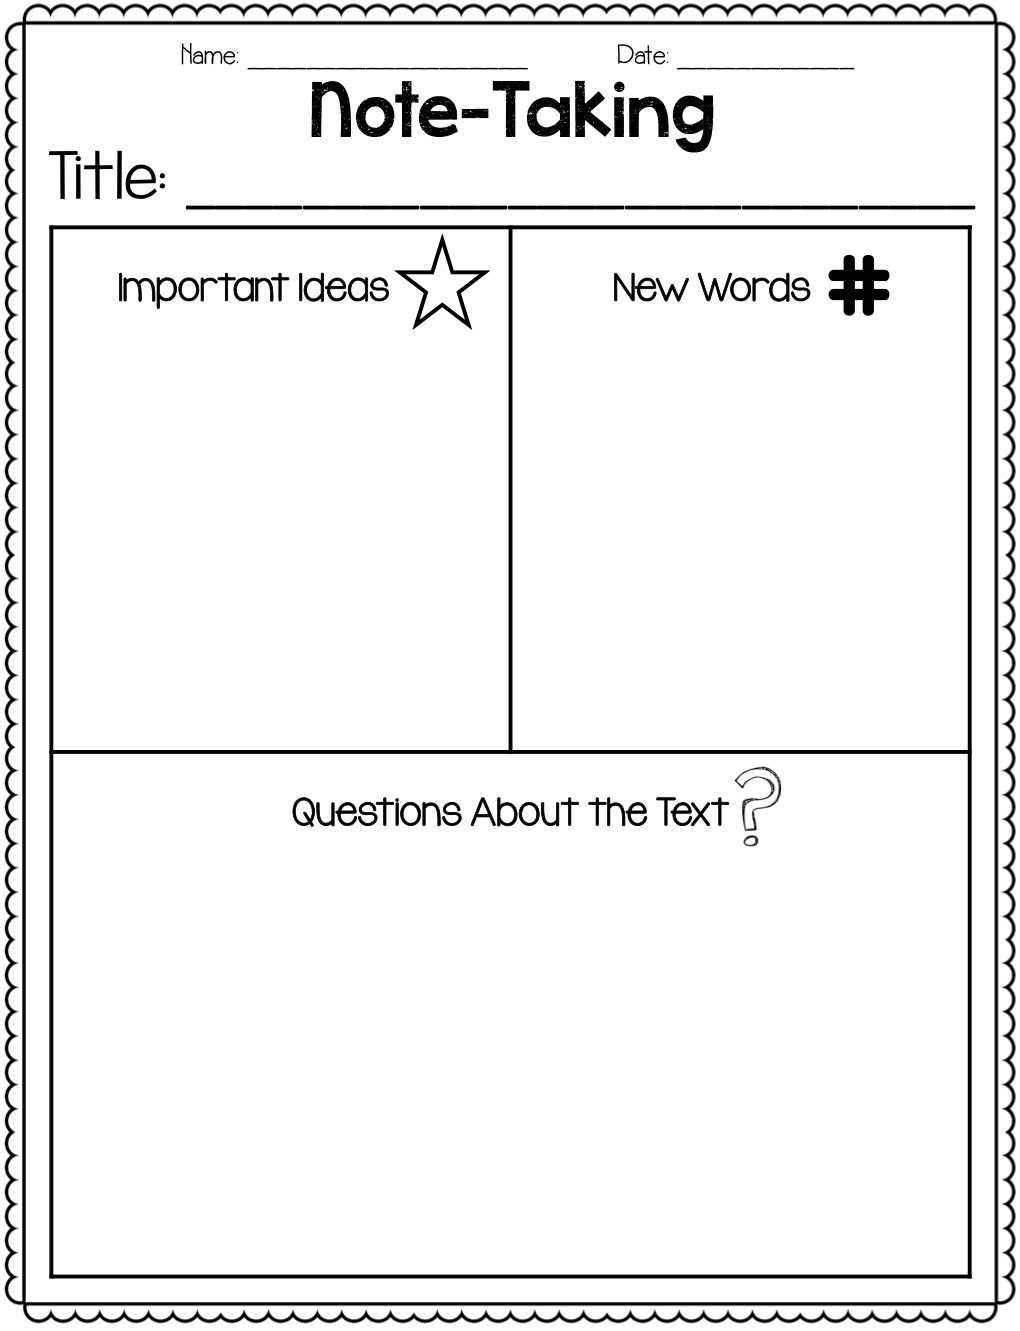 Use these Thinking and Planning Examples to Integrate Inspiration Into Your Curriculum